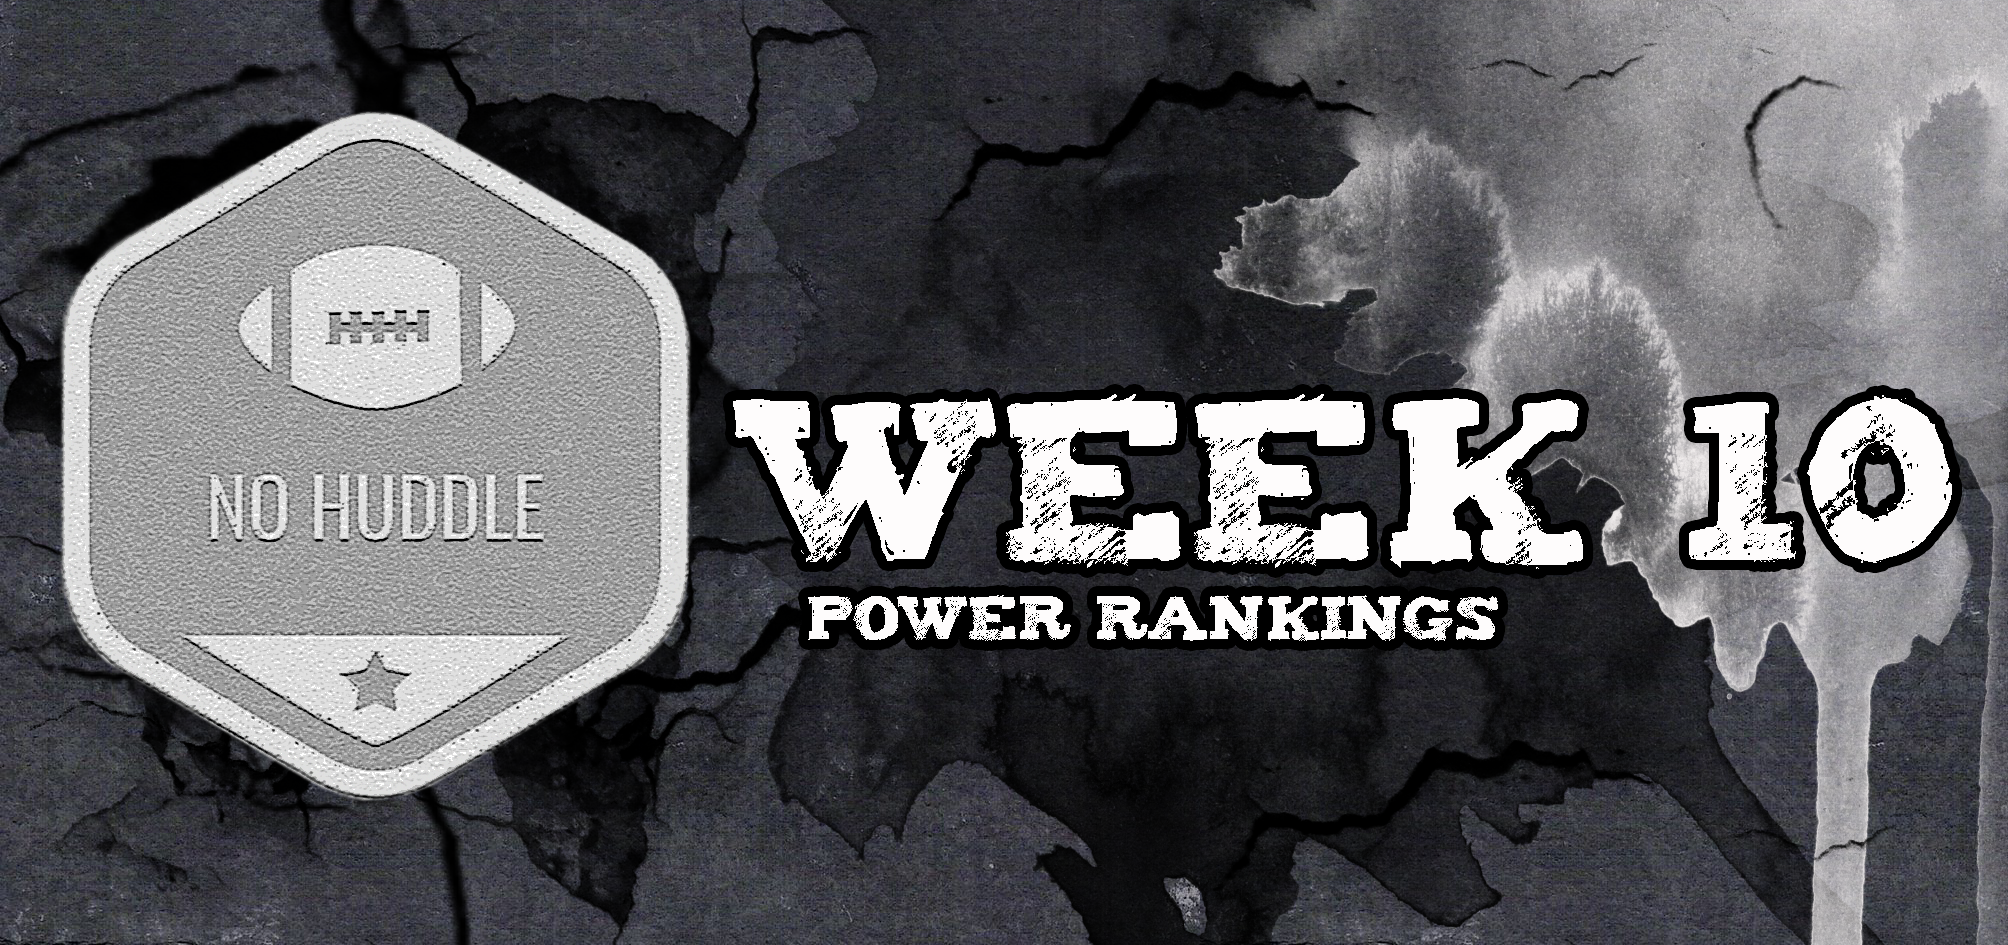 Power Rankings: Semana 10